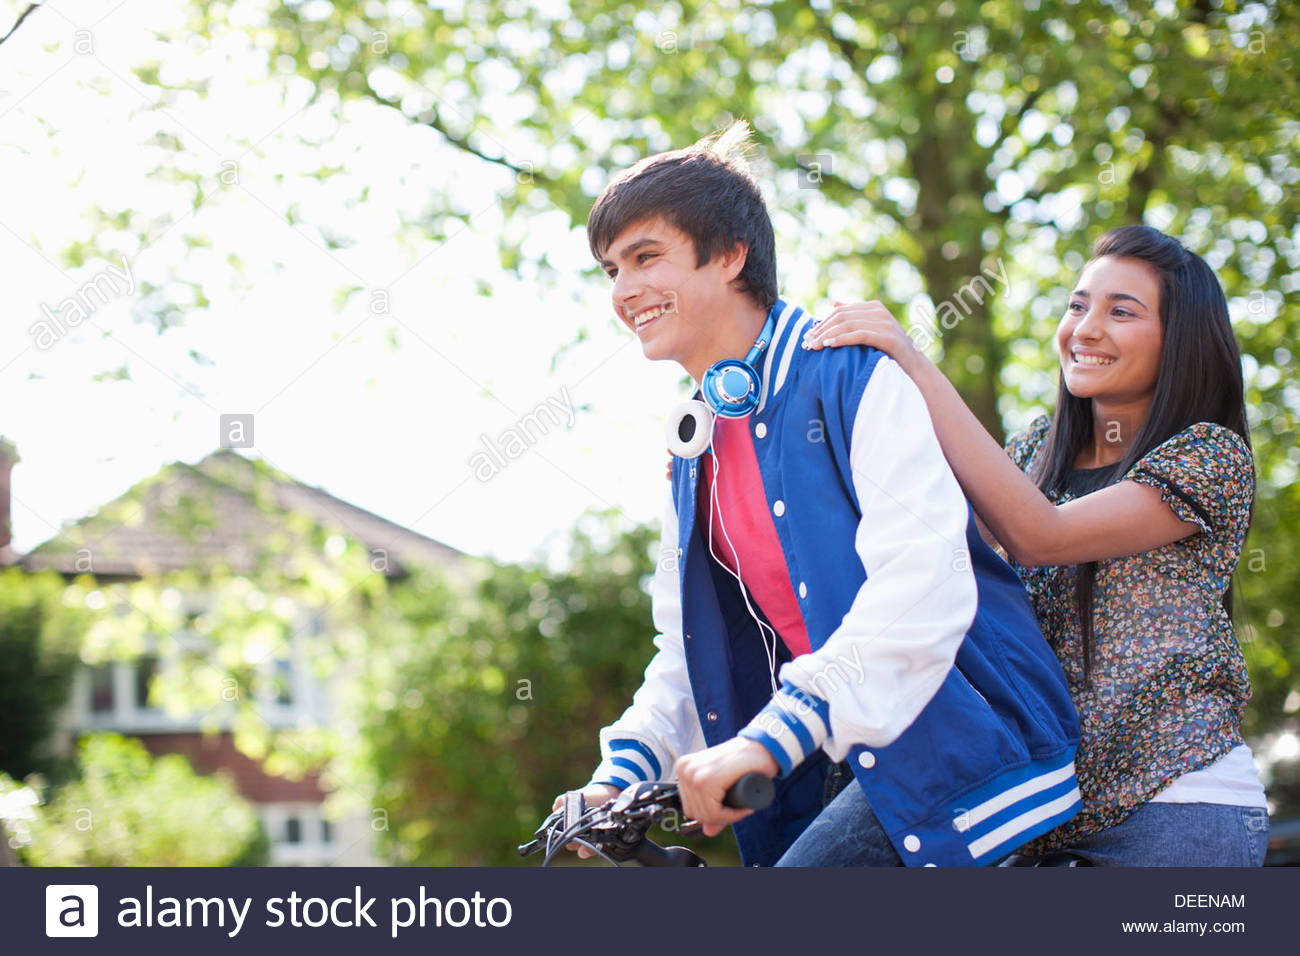 Teenage boy riding girlfriend on bicycle - Stock Image